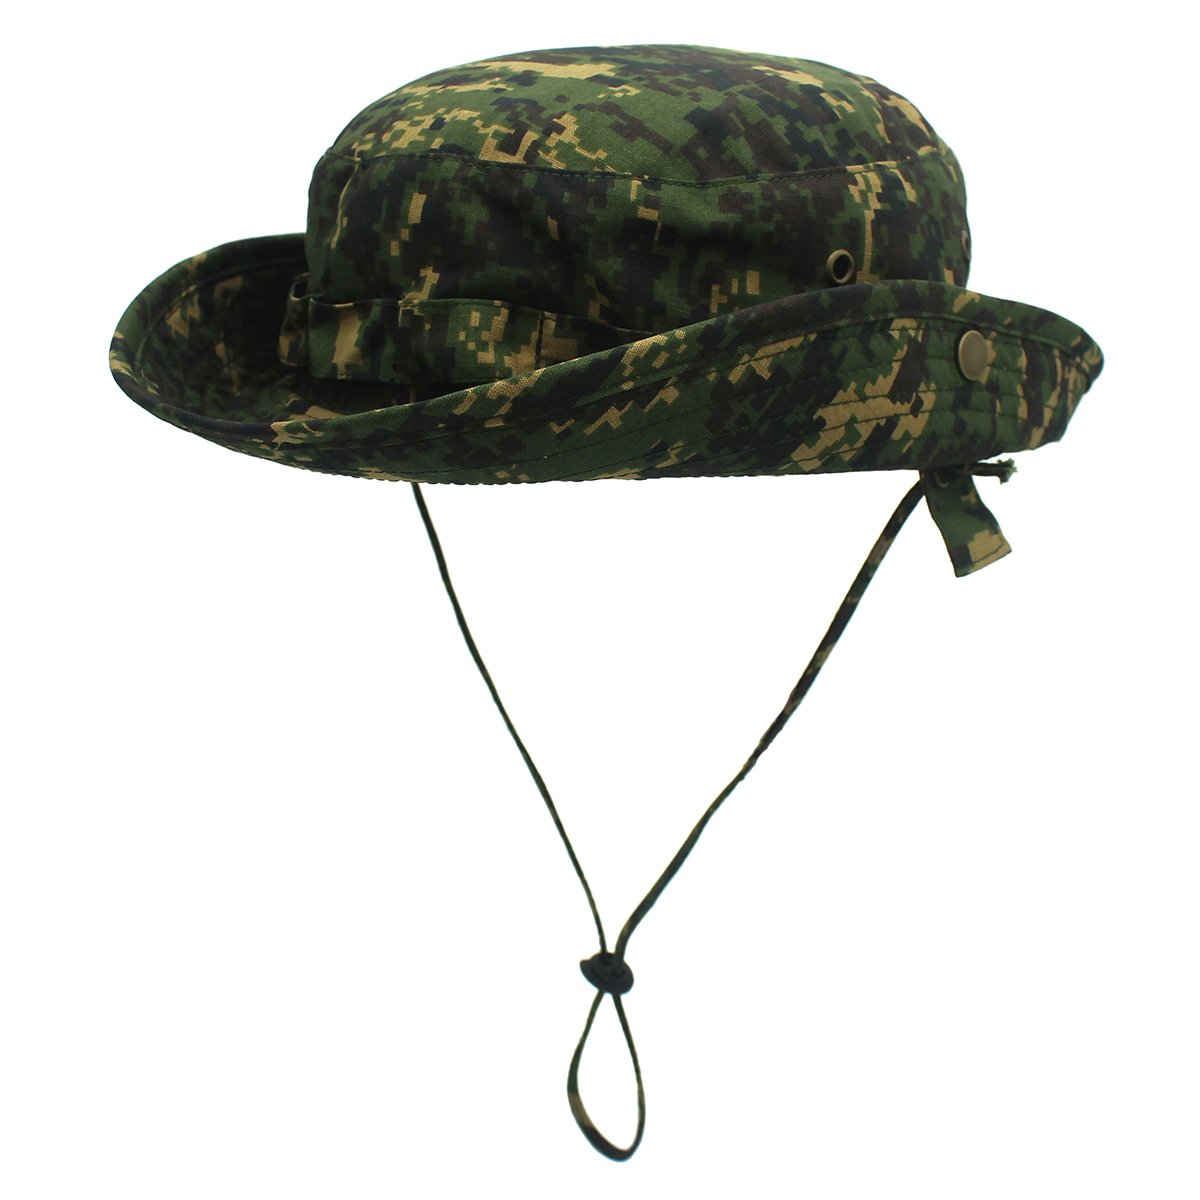 de86ad4b329 Amazon.com  LLmoway Light Weight Camo Sun Hat UV Protection Mens Breathable Bucket  Hat with Strings Army Green  Clothing